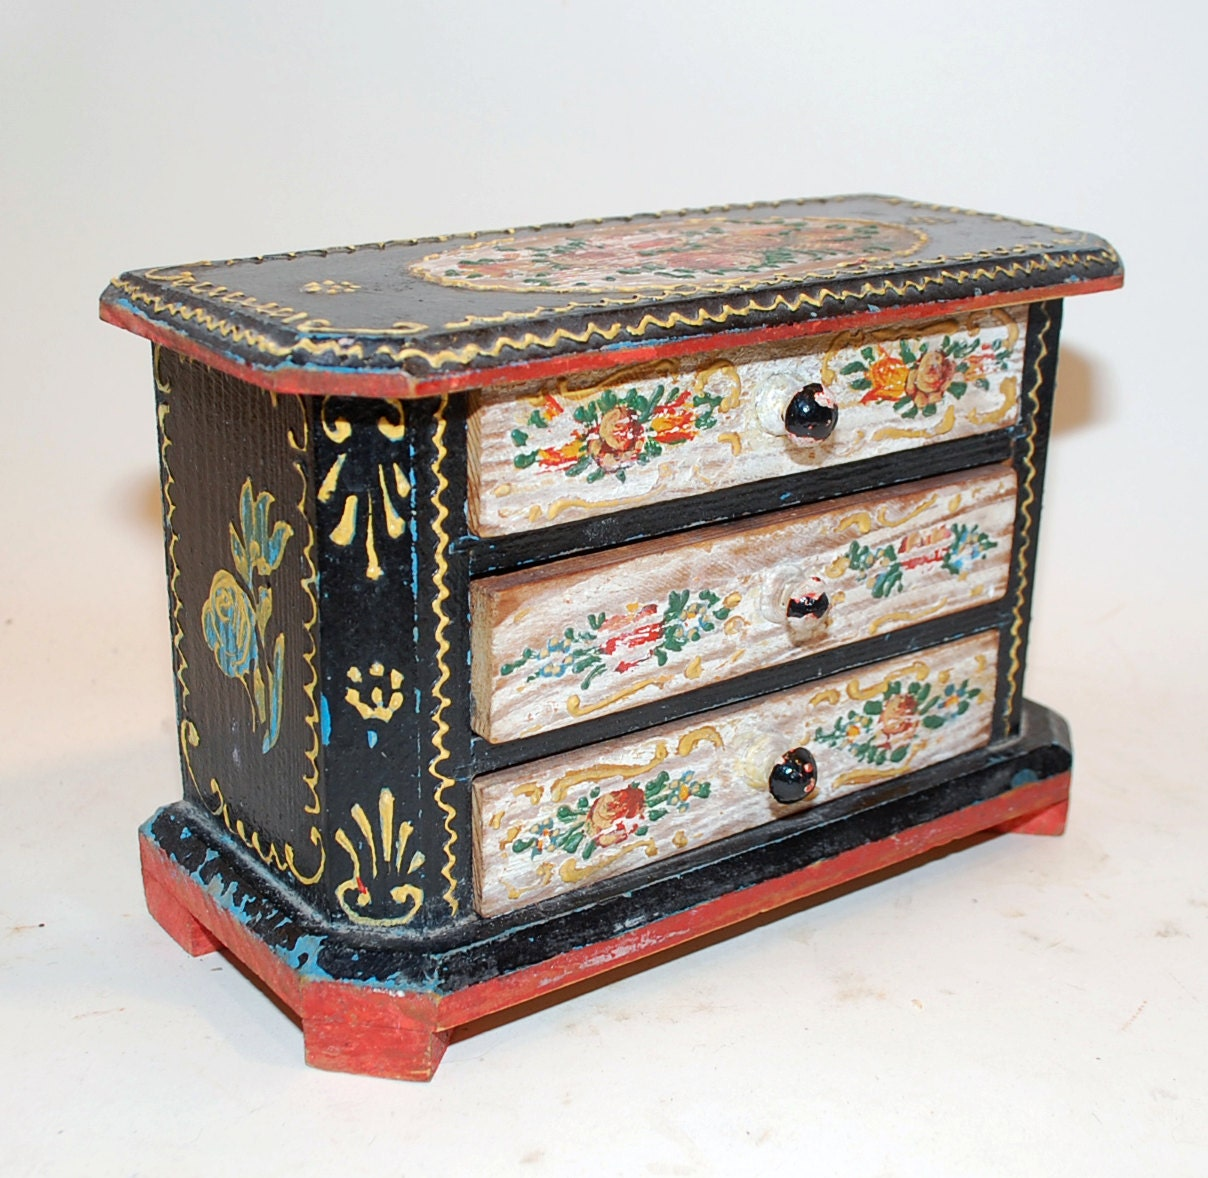 Vintage jewelry box doll dresser painted application for Vintage antique jewelry box